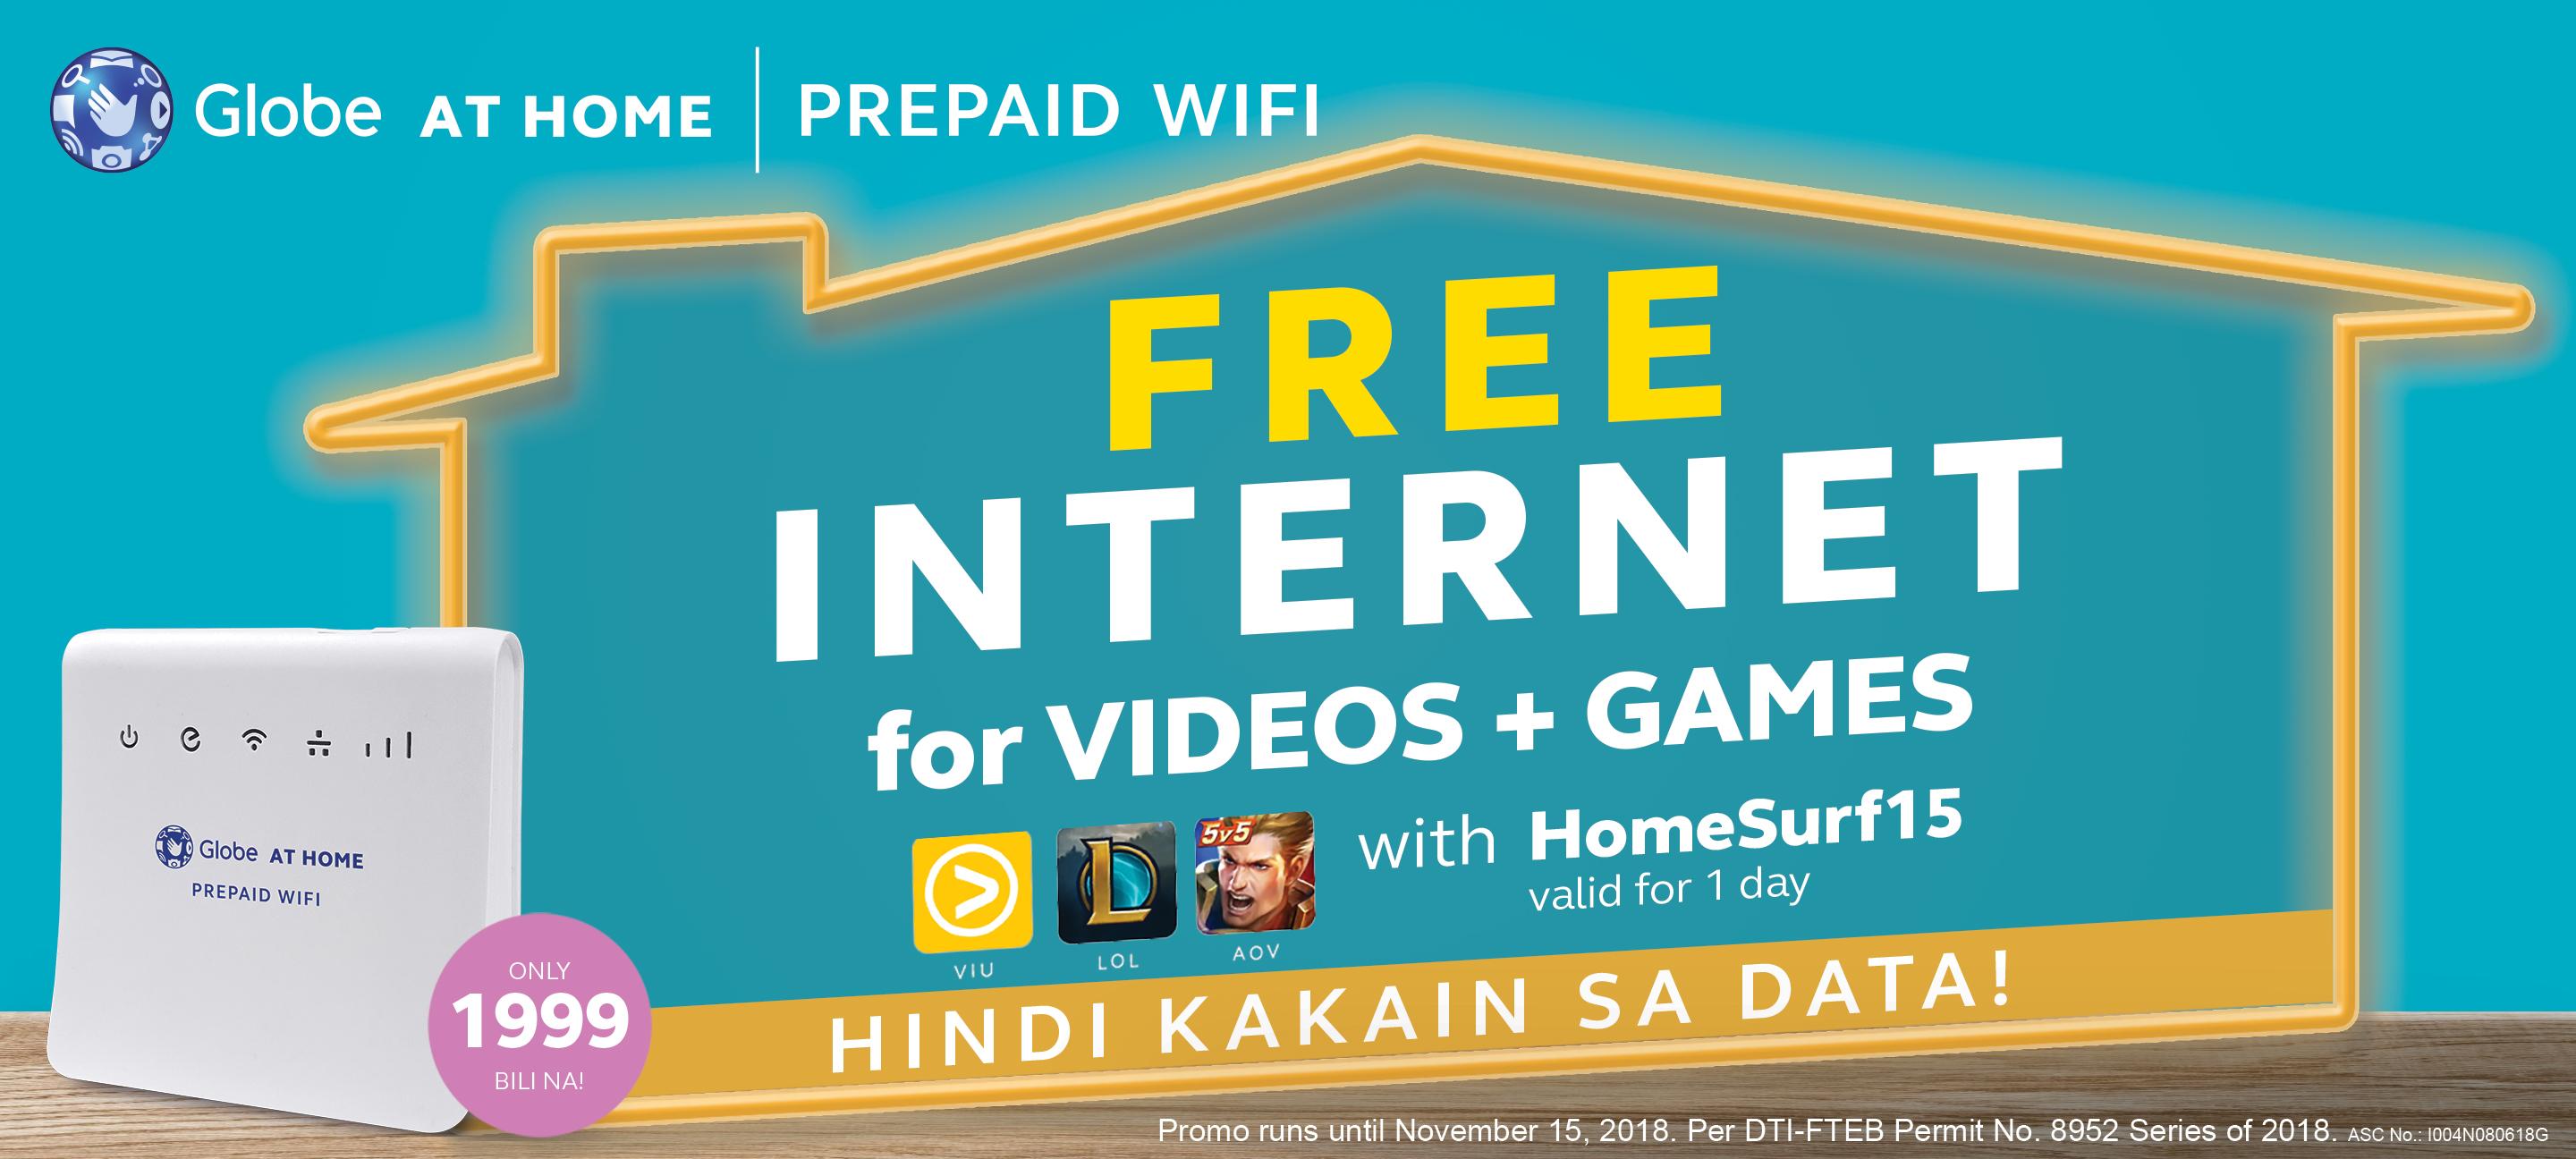 Level up your family bonding with FREE INTERNET